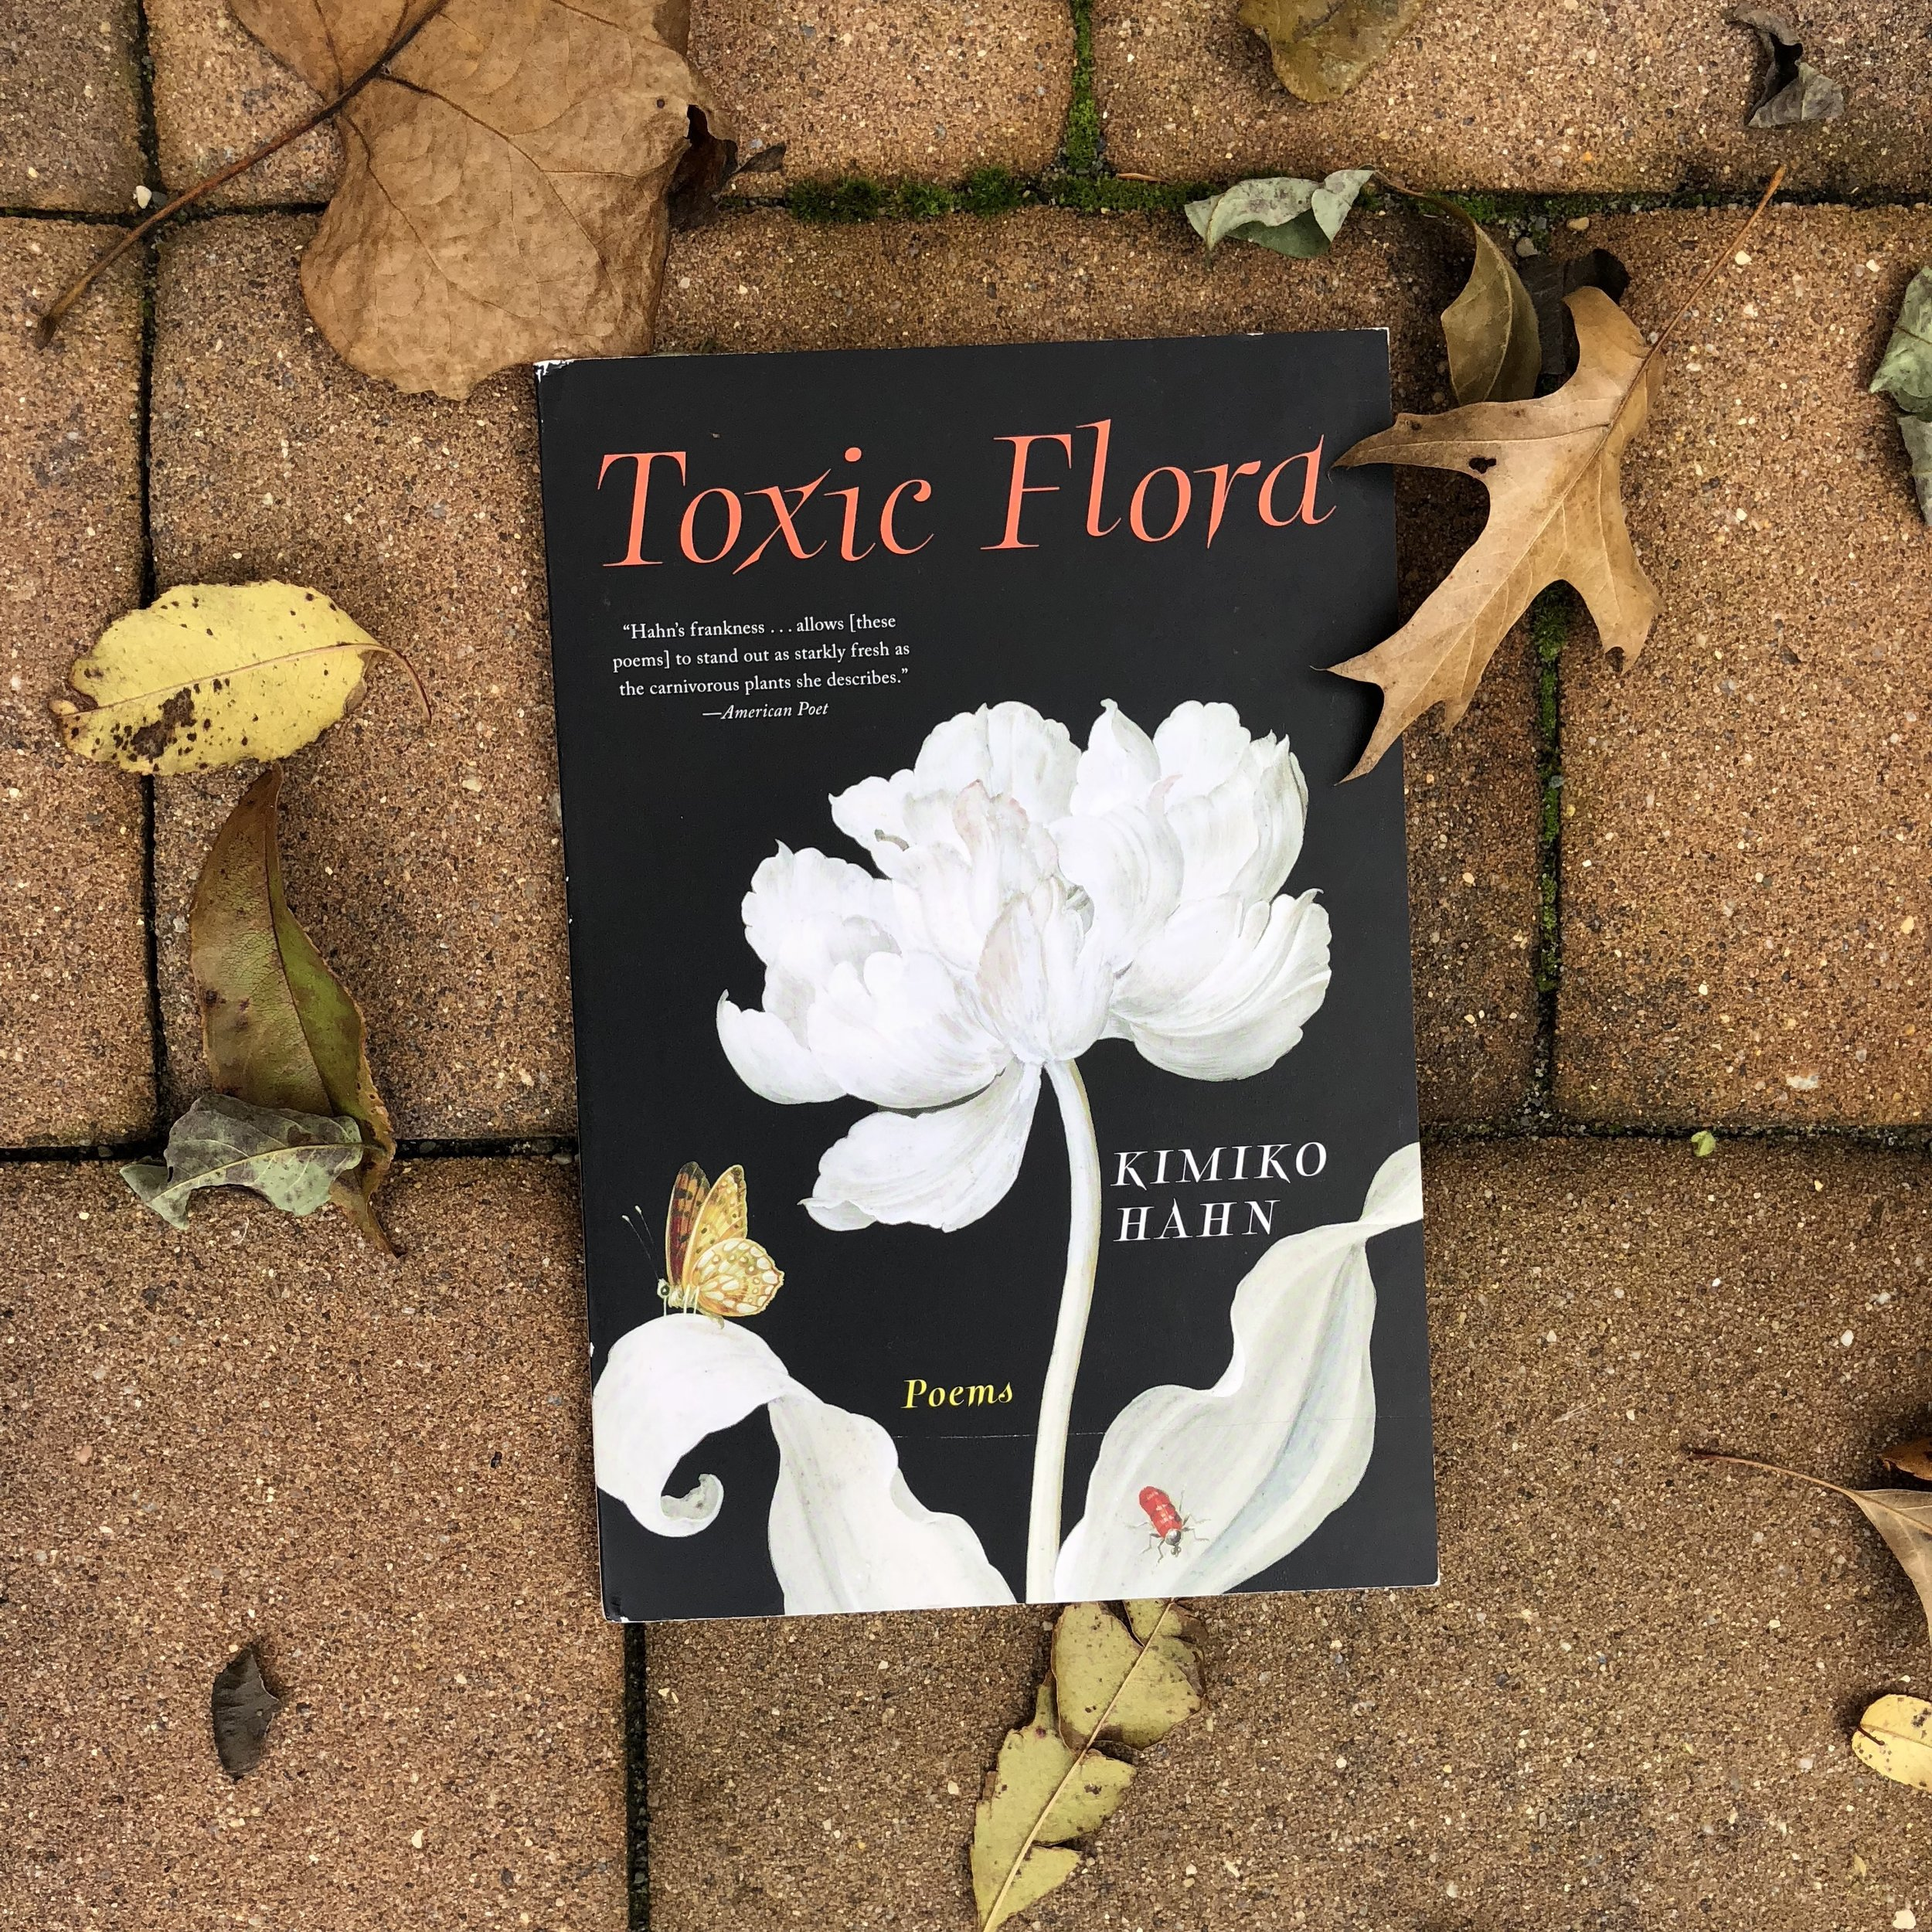 'Toxic Flord' - By Kimiko Hahn